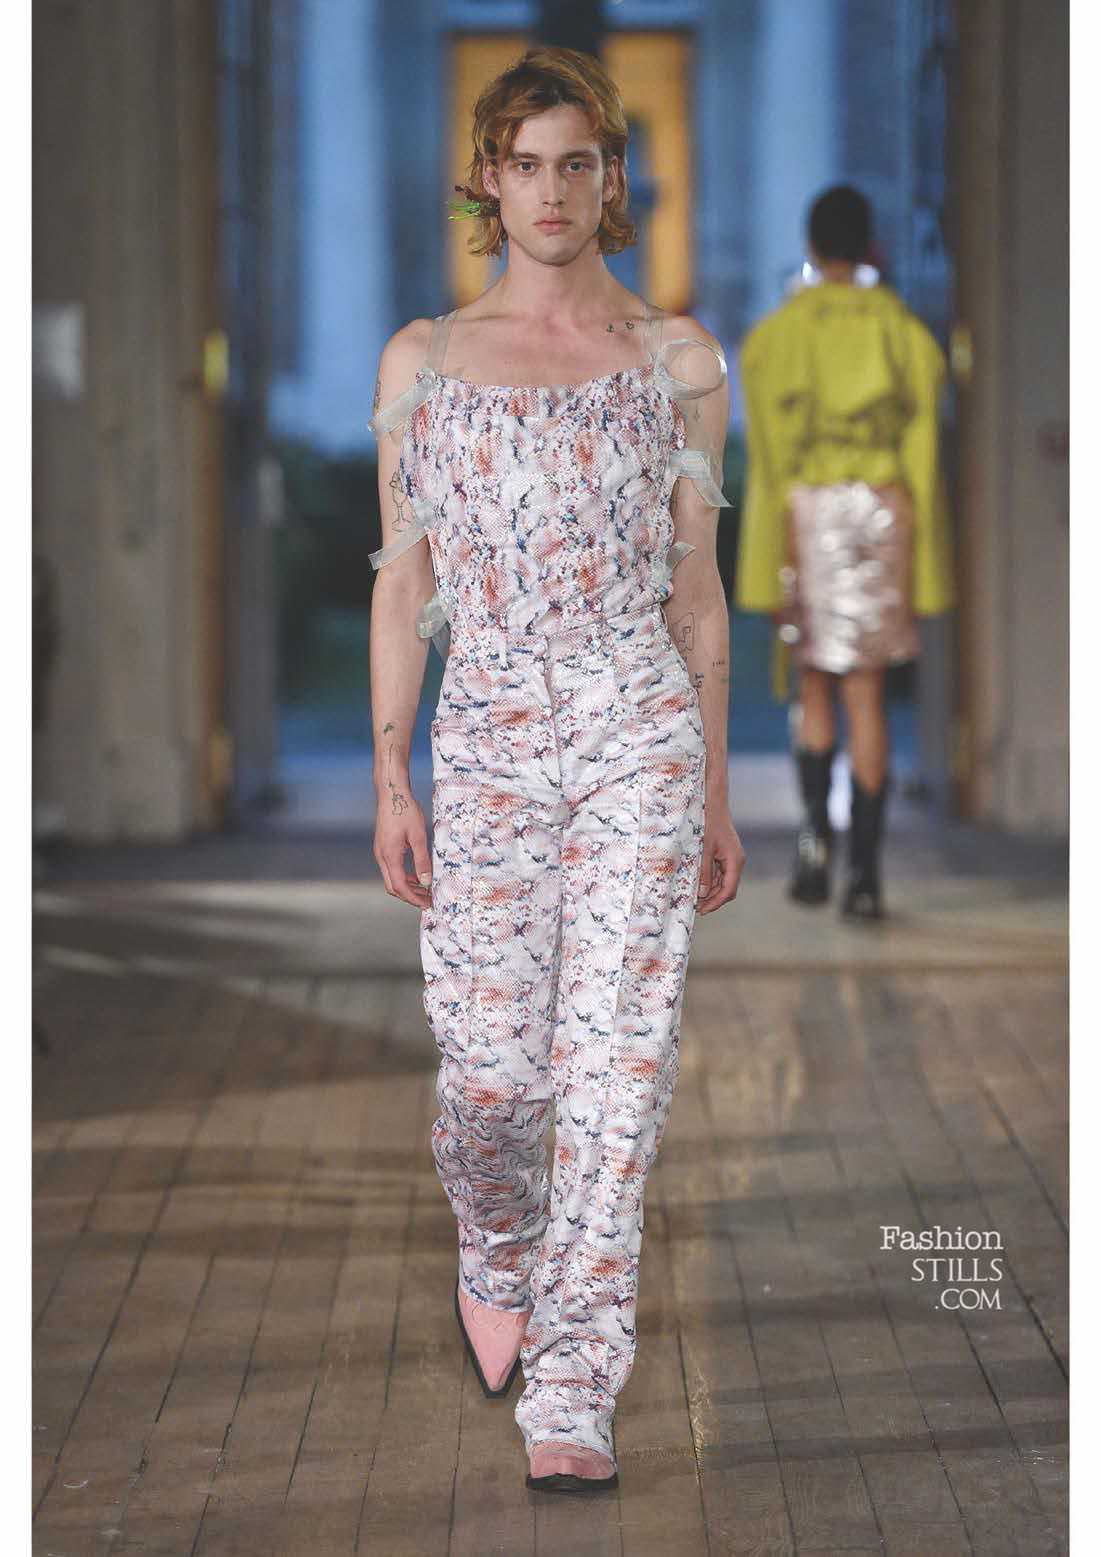 Neith Nyer_1513681575_72_look-book-_-press-release-ss18-neith-nyer-013.jpg